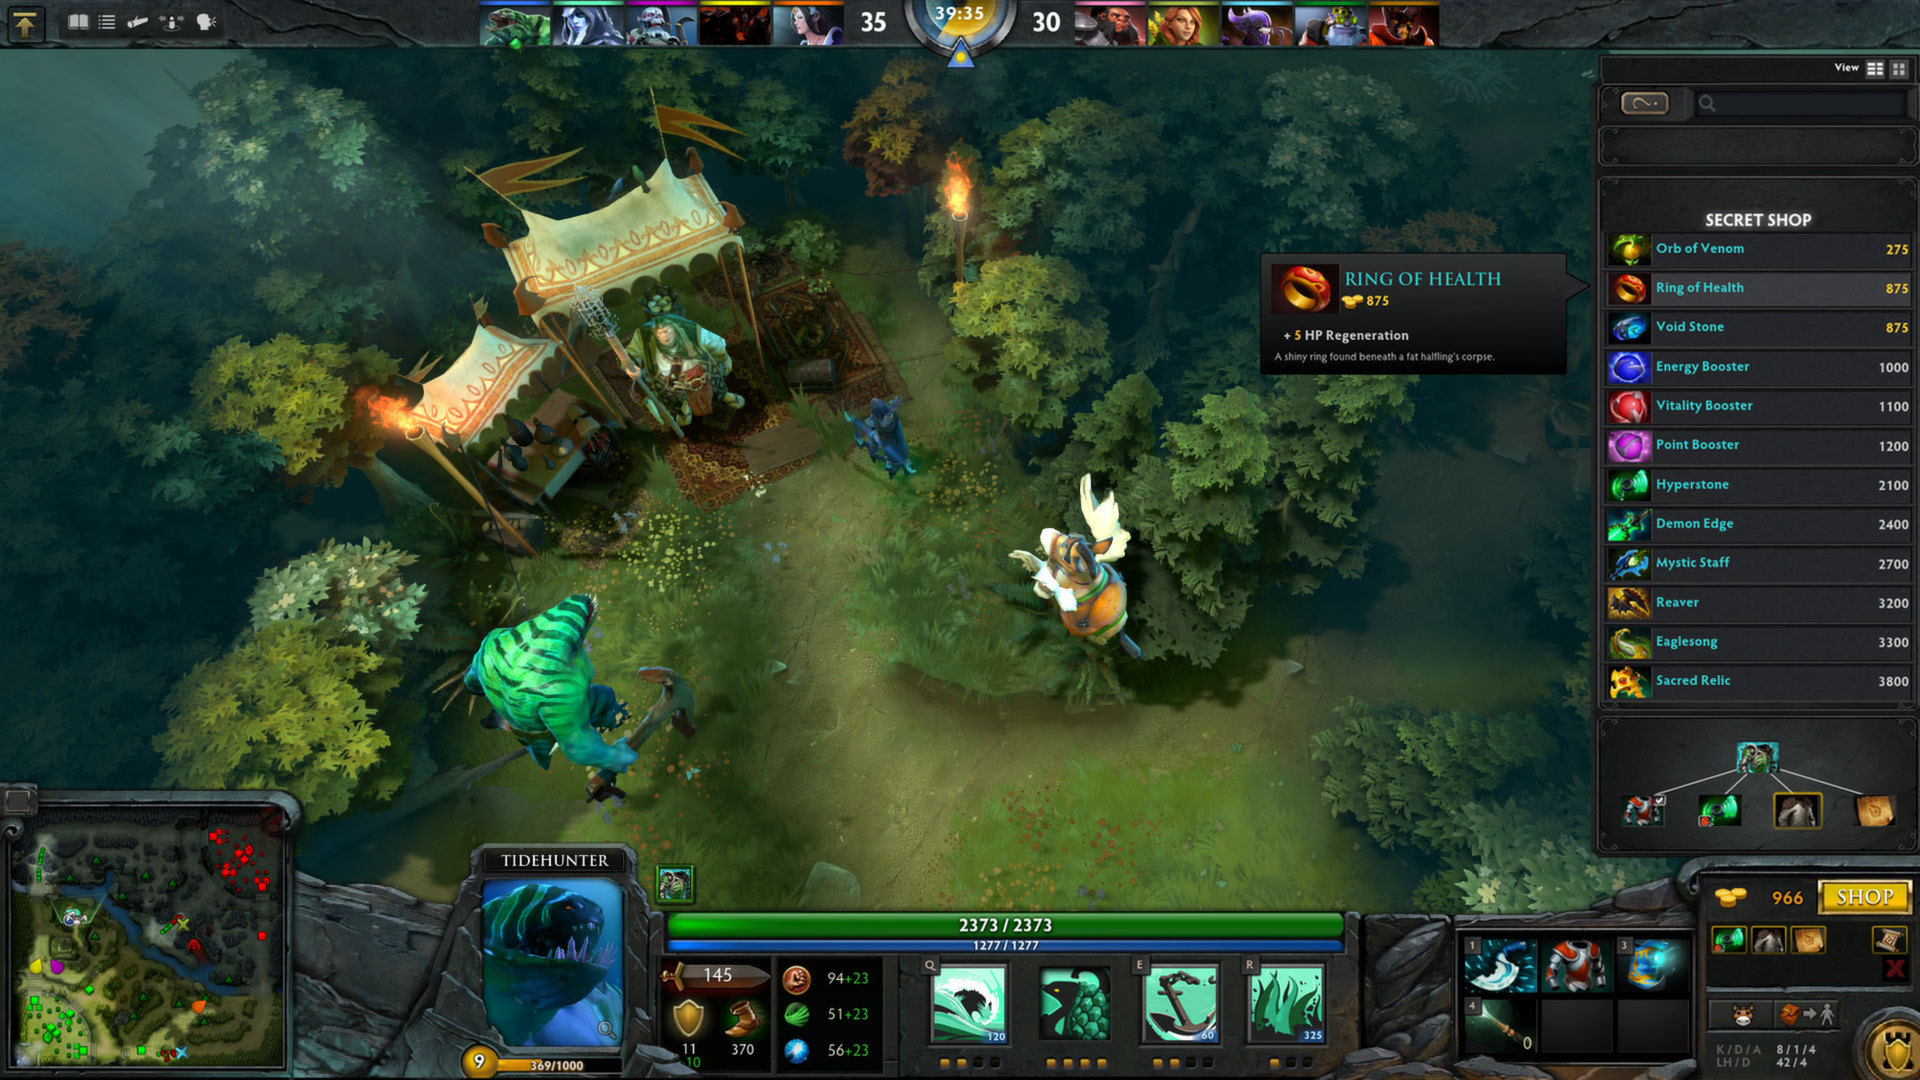 Best free-to-play Games - Dota 2